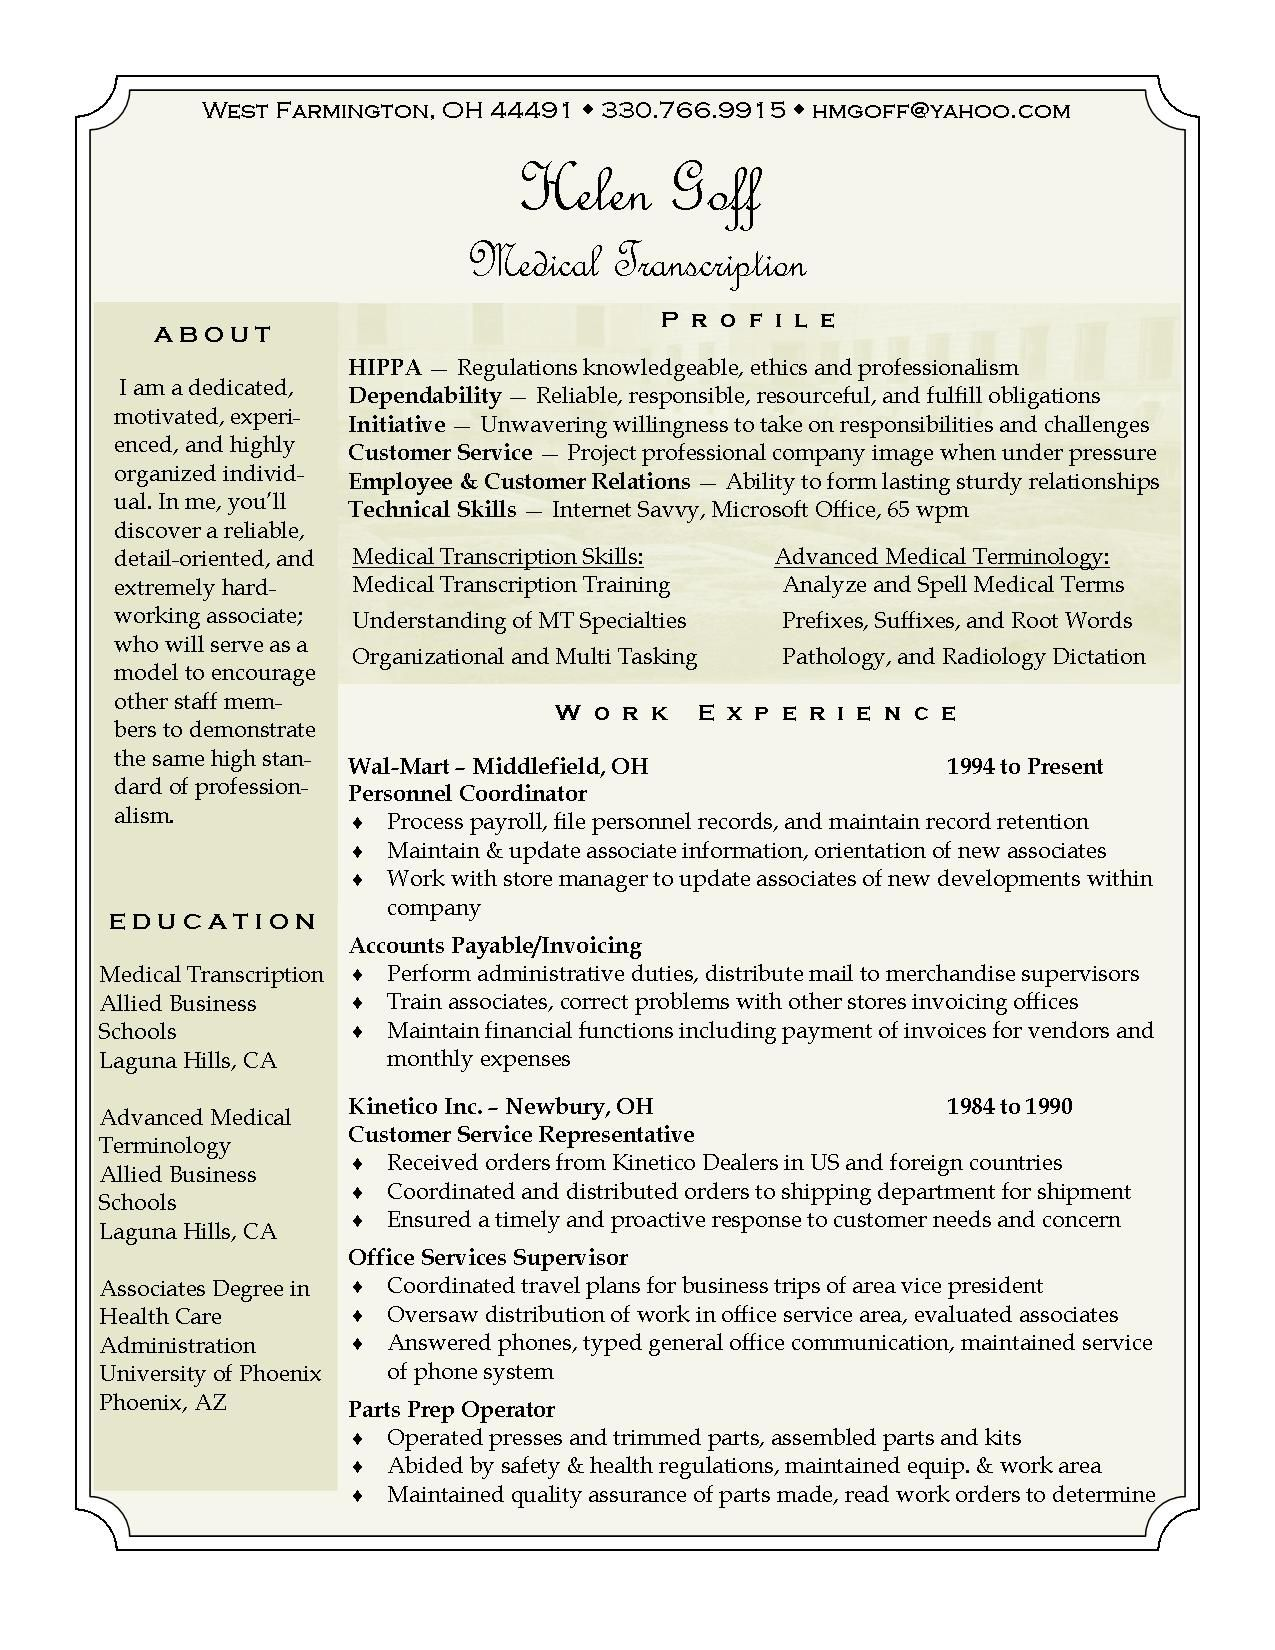 Helen Goff Resume Medical Transcription Resume Career Medical